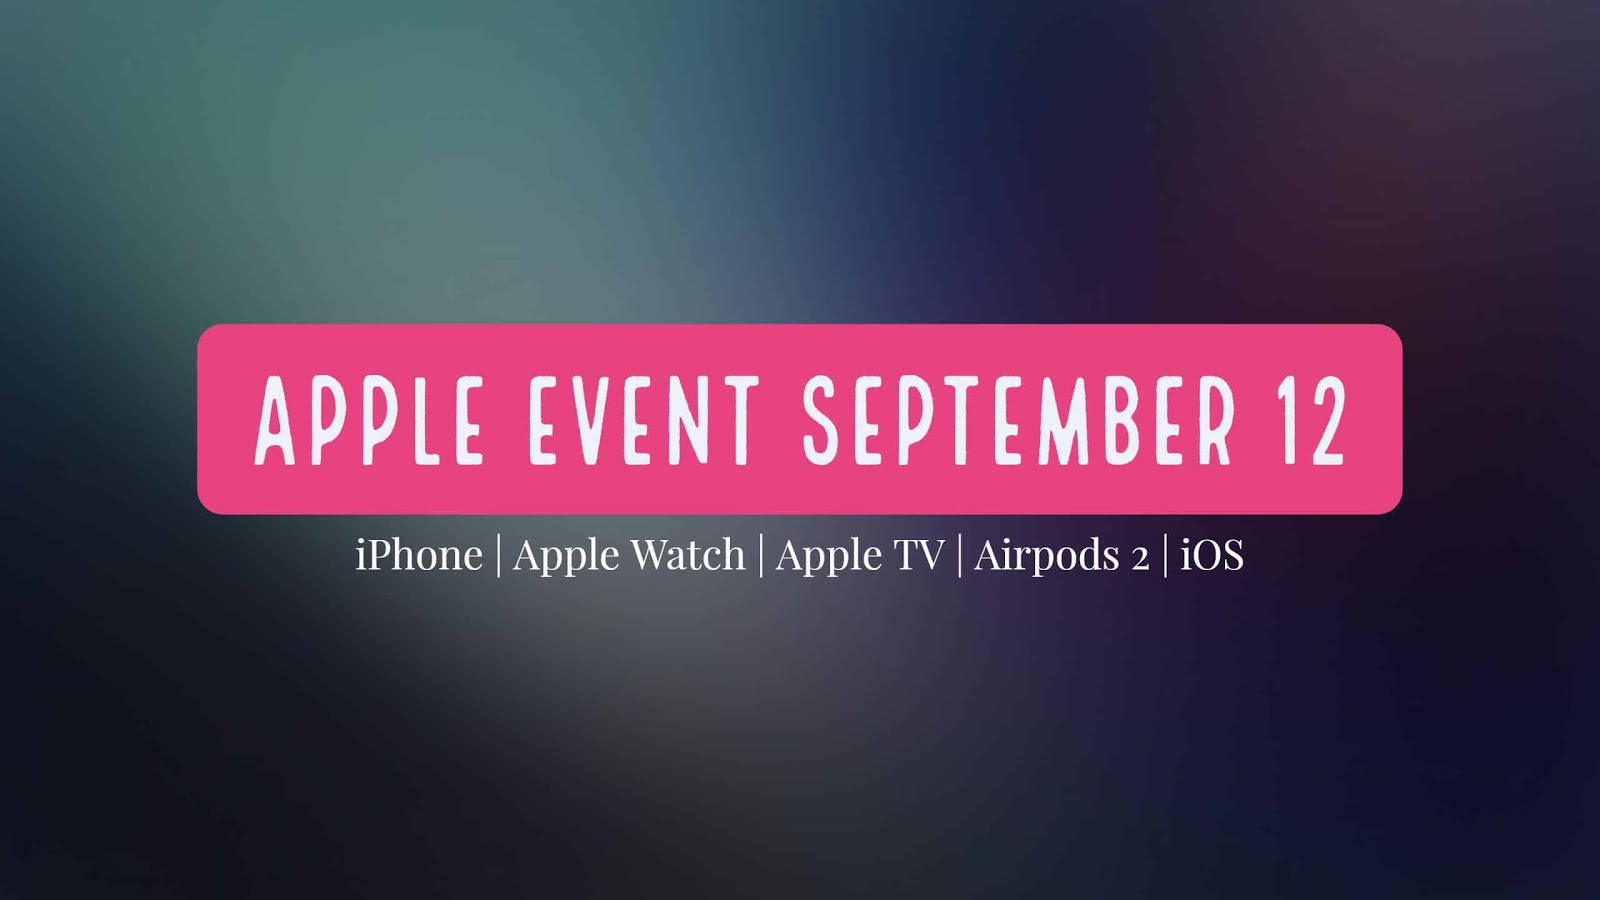 September 12 is a huge day for Apple and all the Apple fans around the world because that day is the day where Apple will launch new products at the event